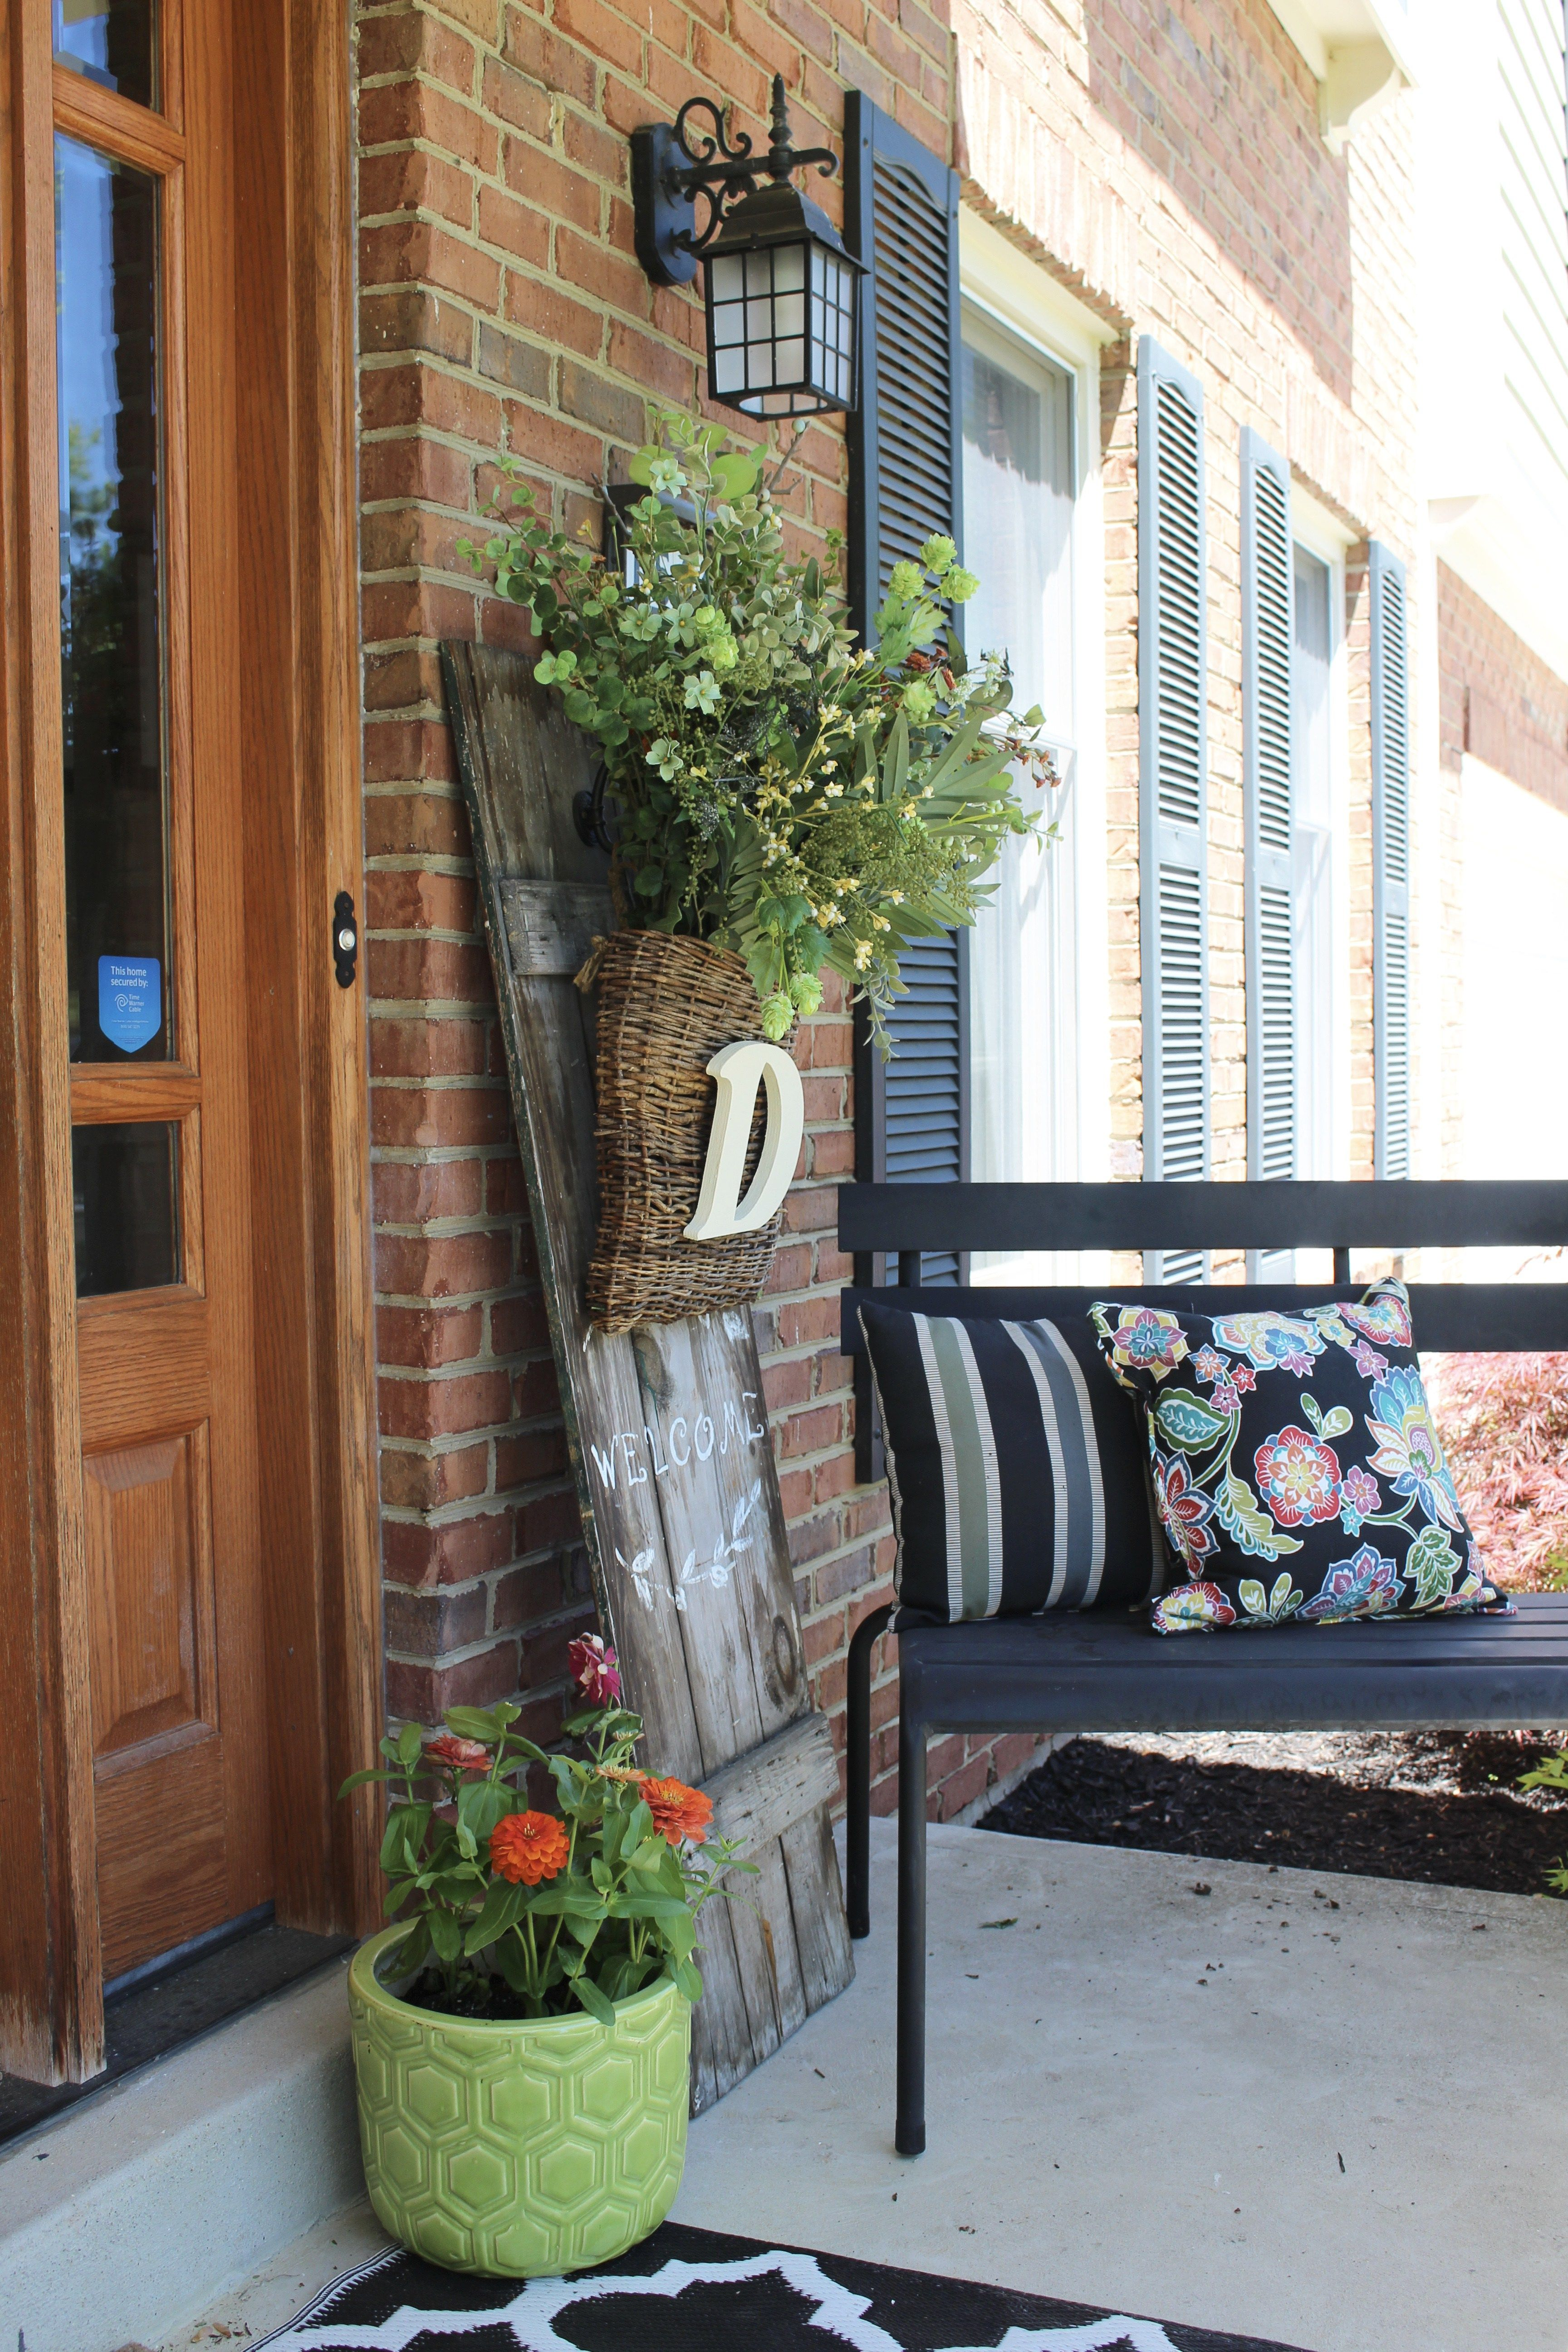 Home decor plants ideas  Spring Porch Decorating for Spring Outdoors Flowers Gardening